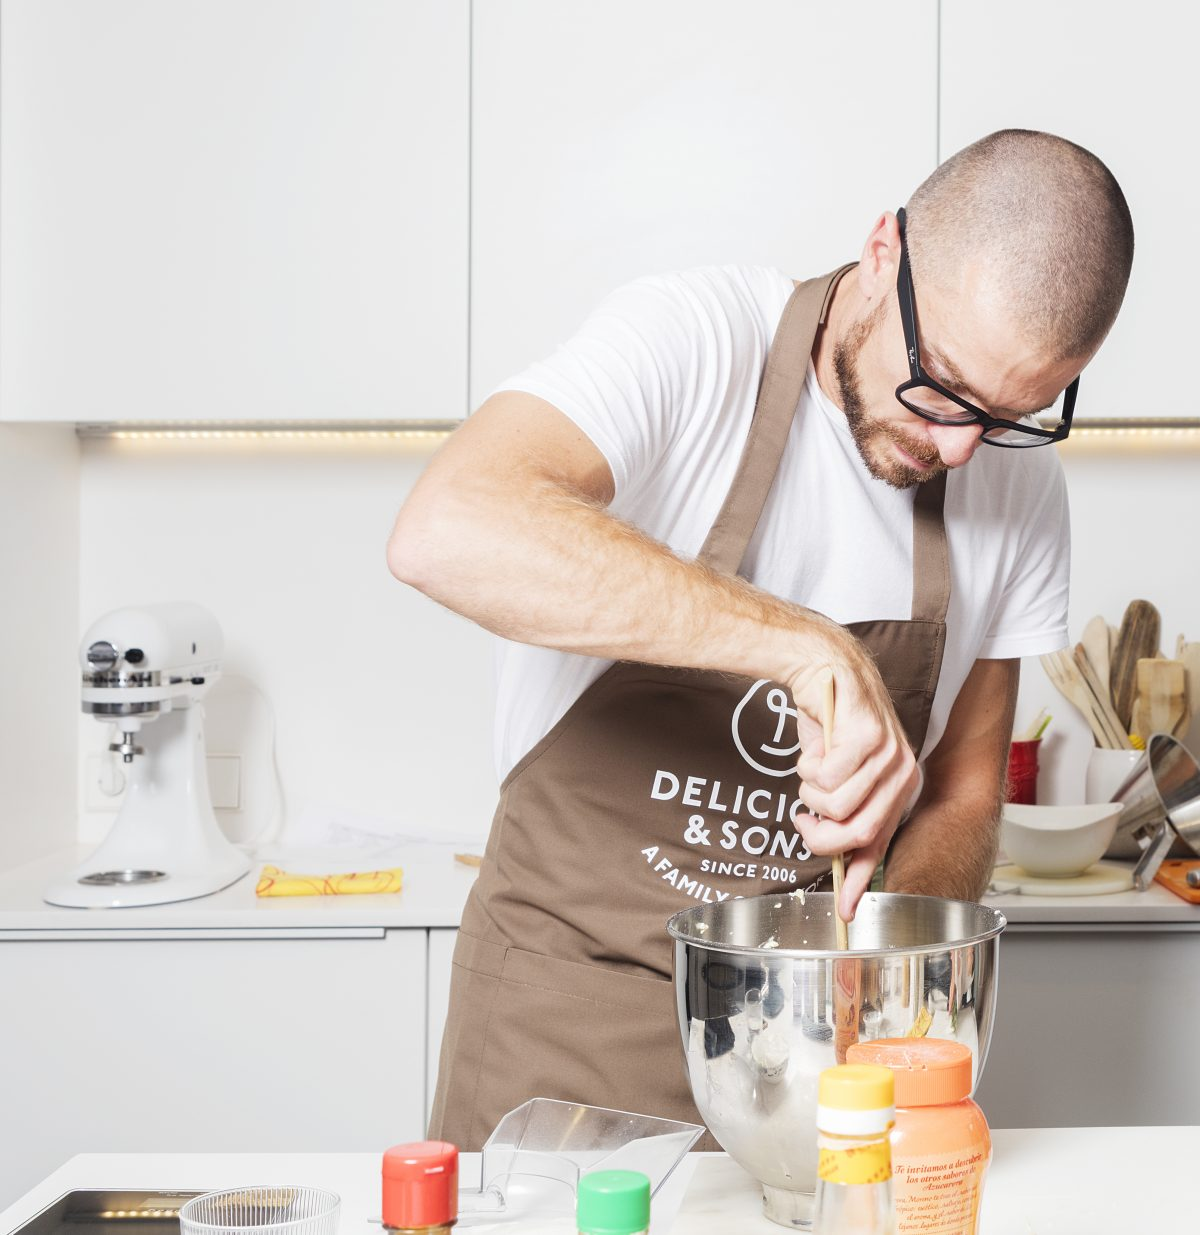 Cooking With Sergi Ferrer, Master Pâtissier and Chef — Delicious & Sons